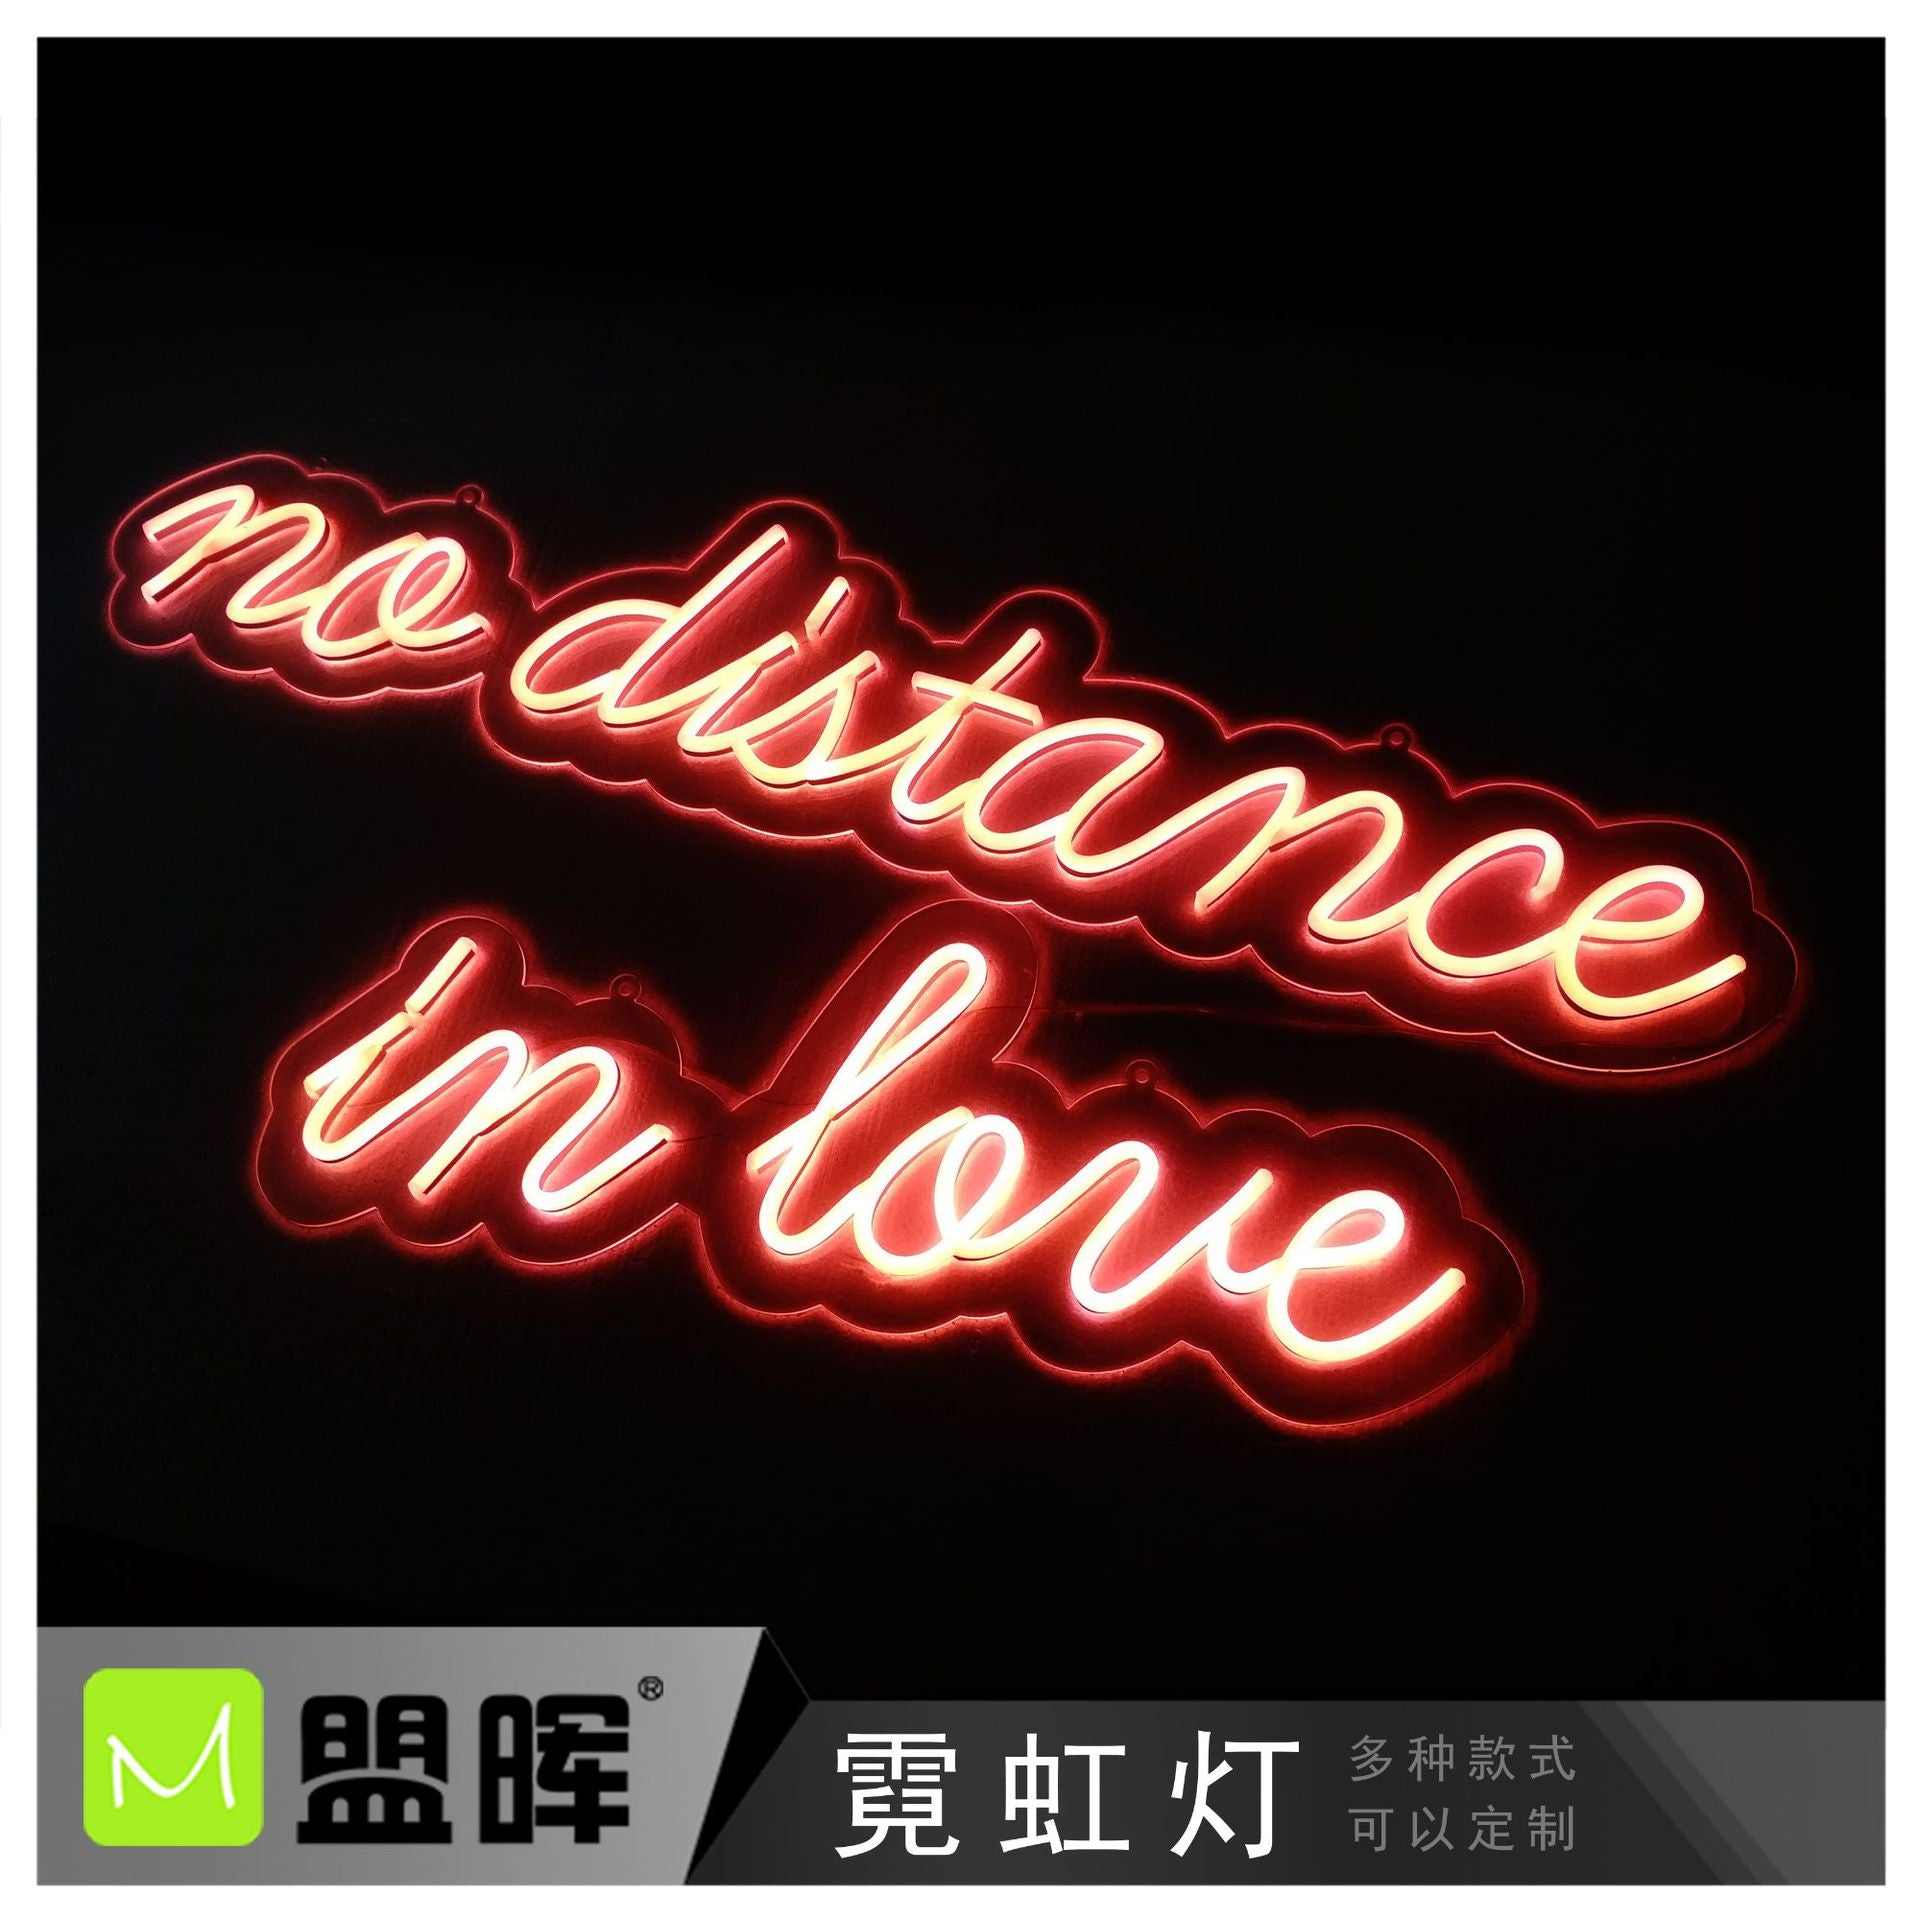 Neon signboard cartoon pattern led light shape chain store/clothing store lighting image wall customization